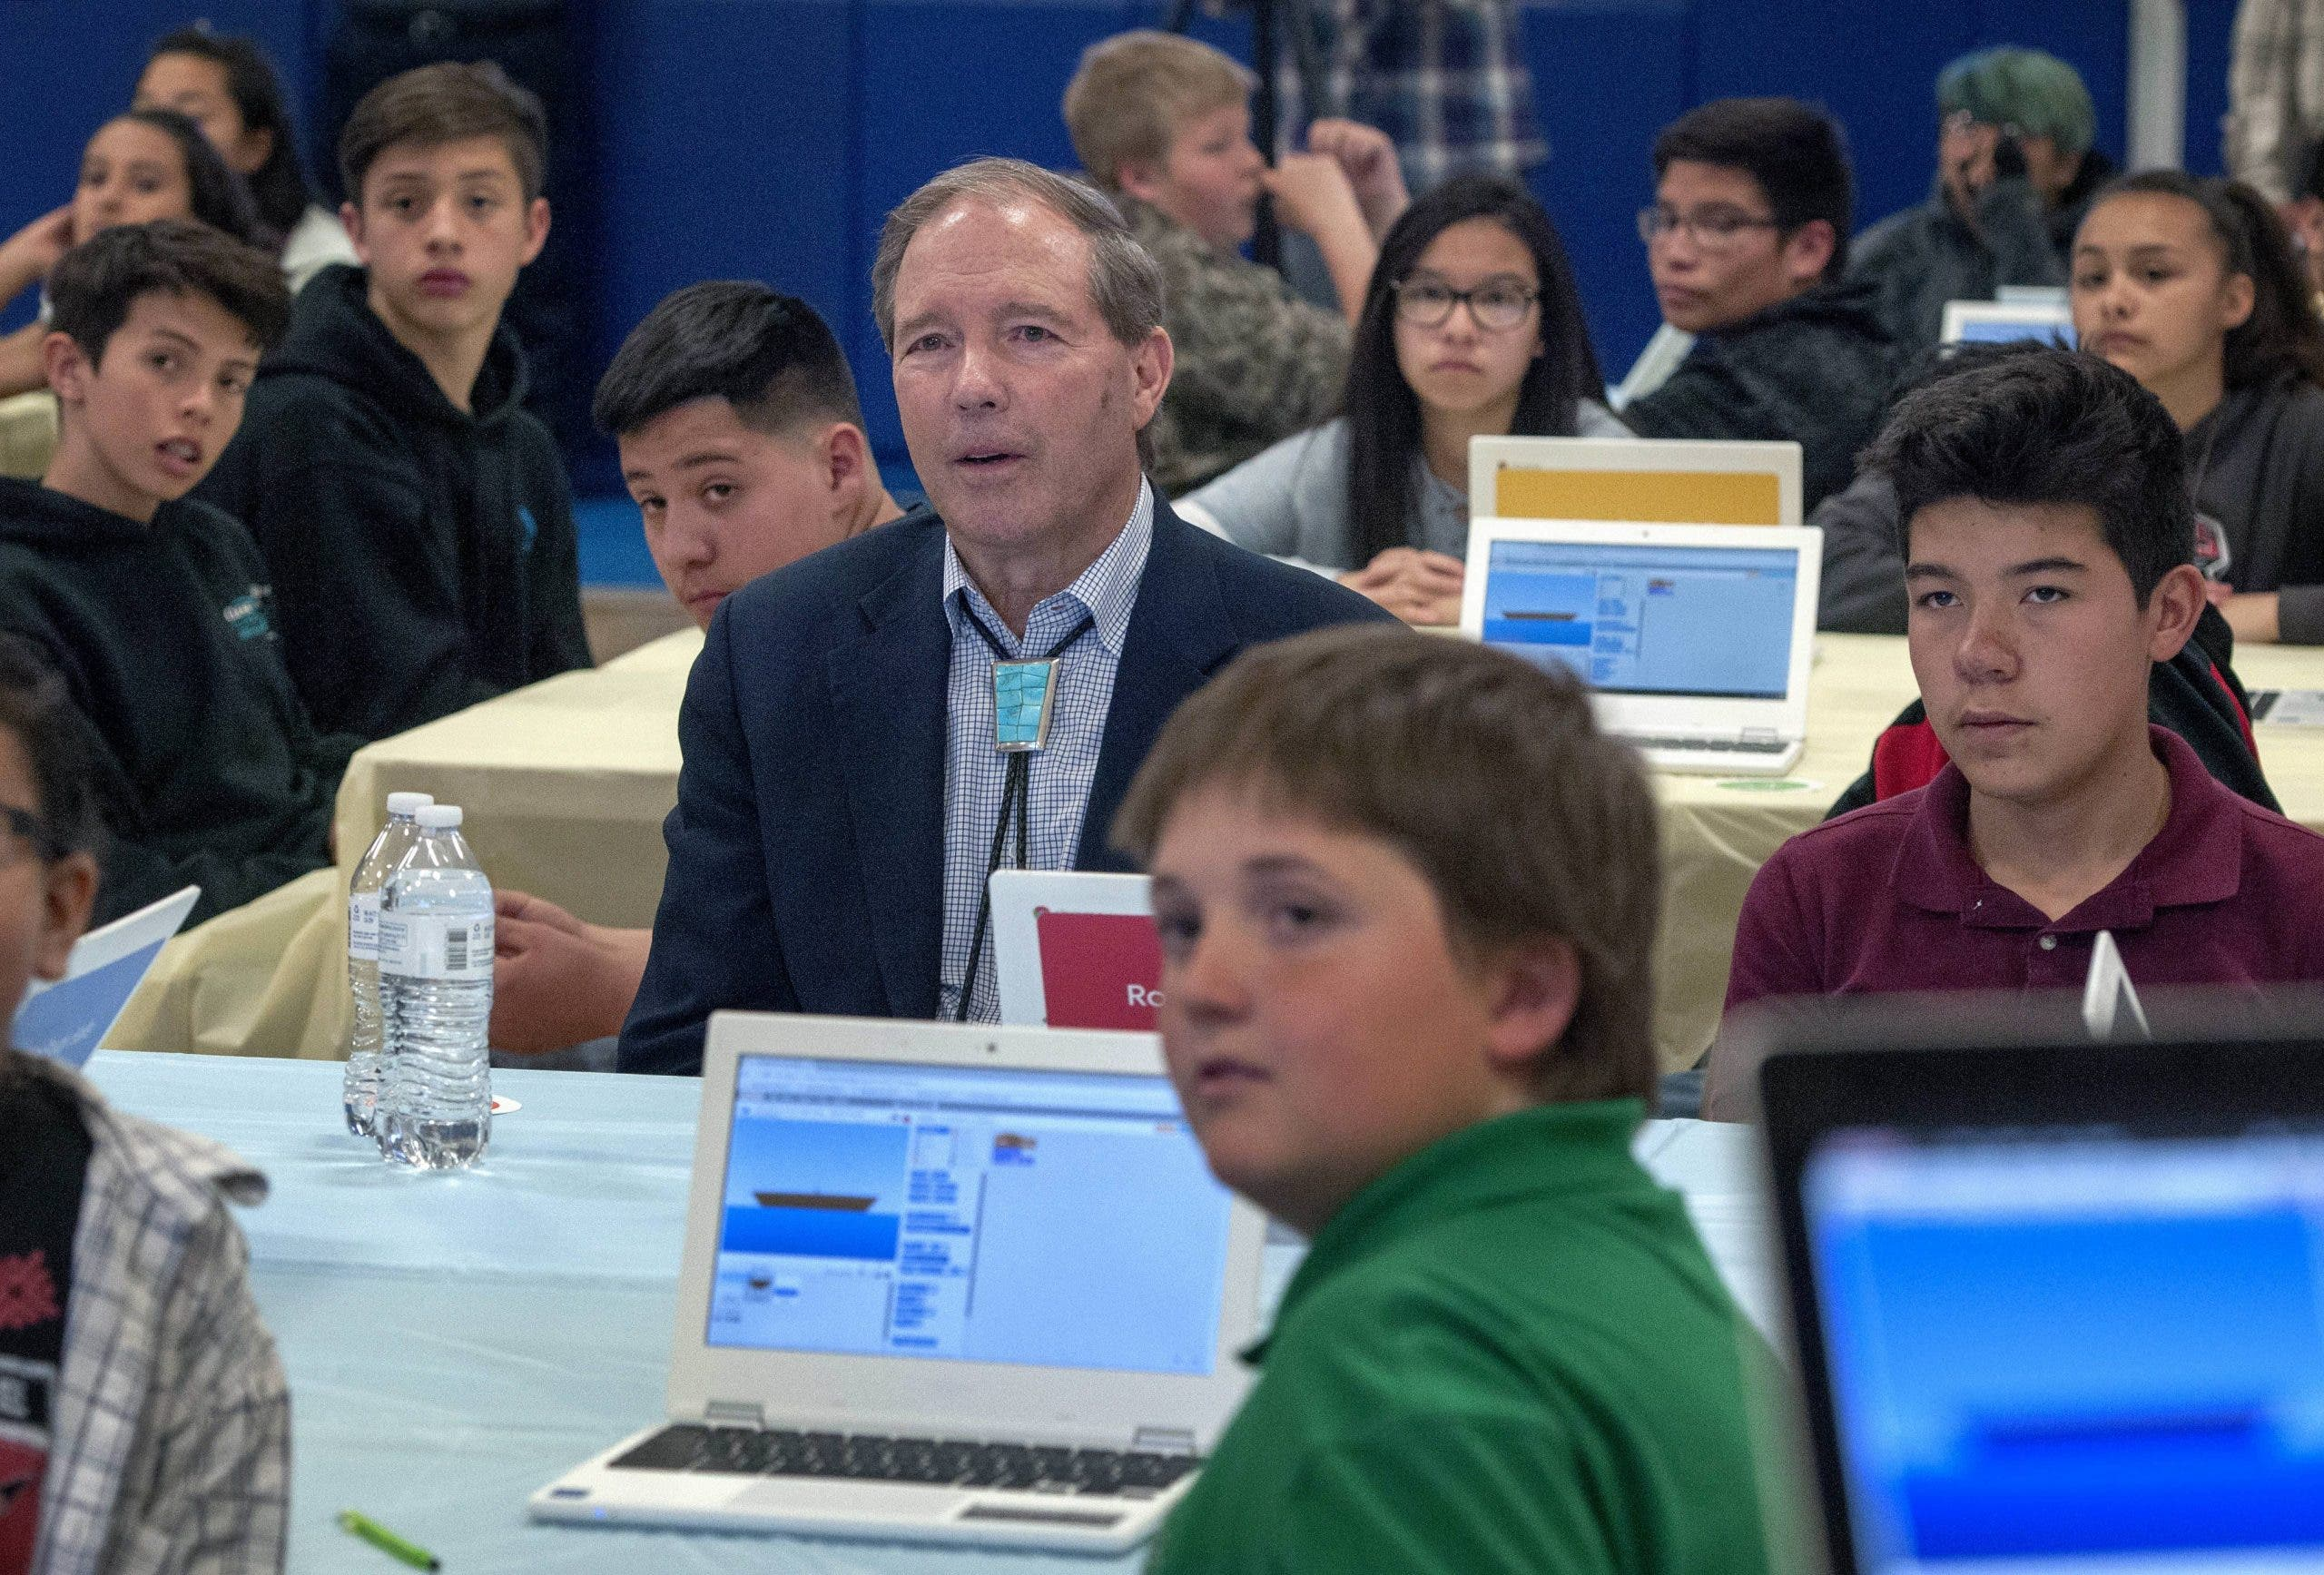 CONNECTED: Internet is increasingly being used in schools all over the world